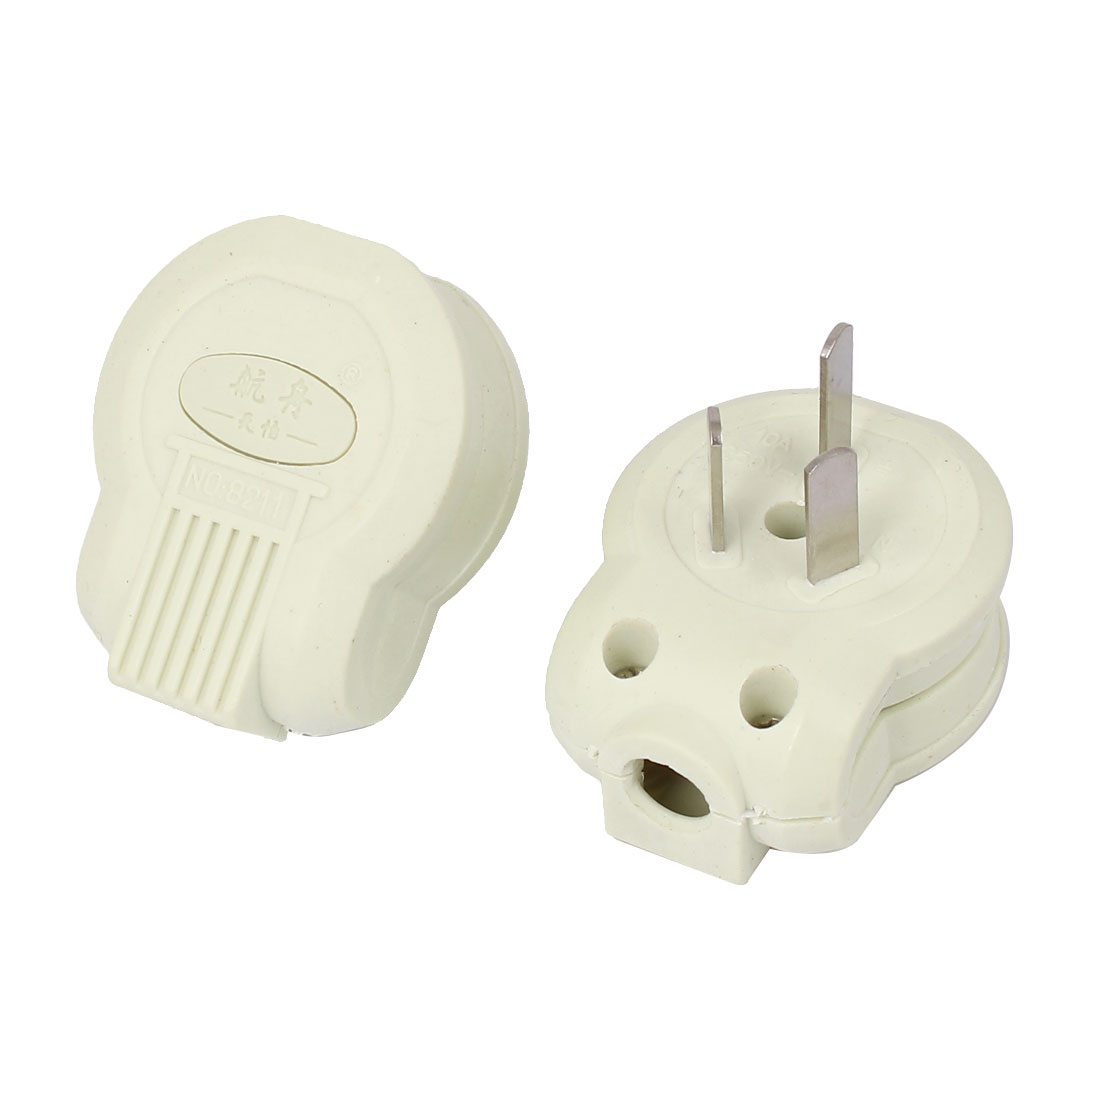 AC 250V 10A 10mm Cable Mounting Hole AU Plug Electric Cable Cord Connector 2pcs